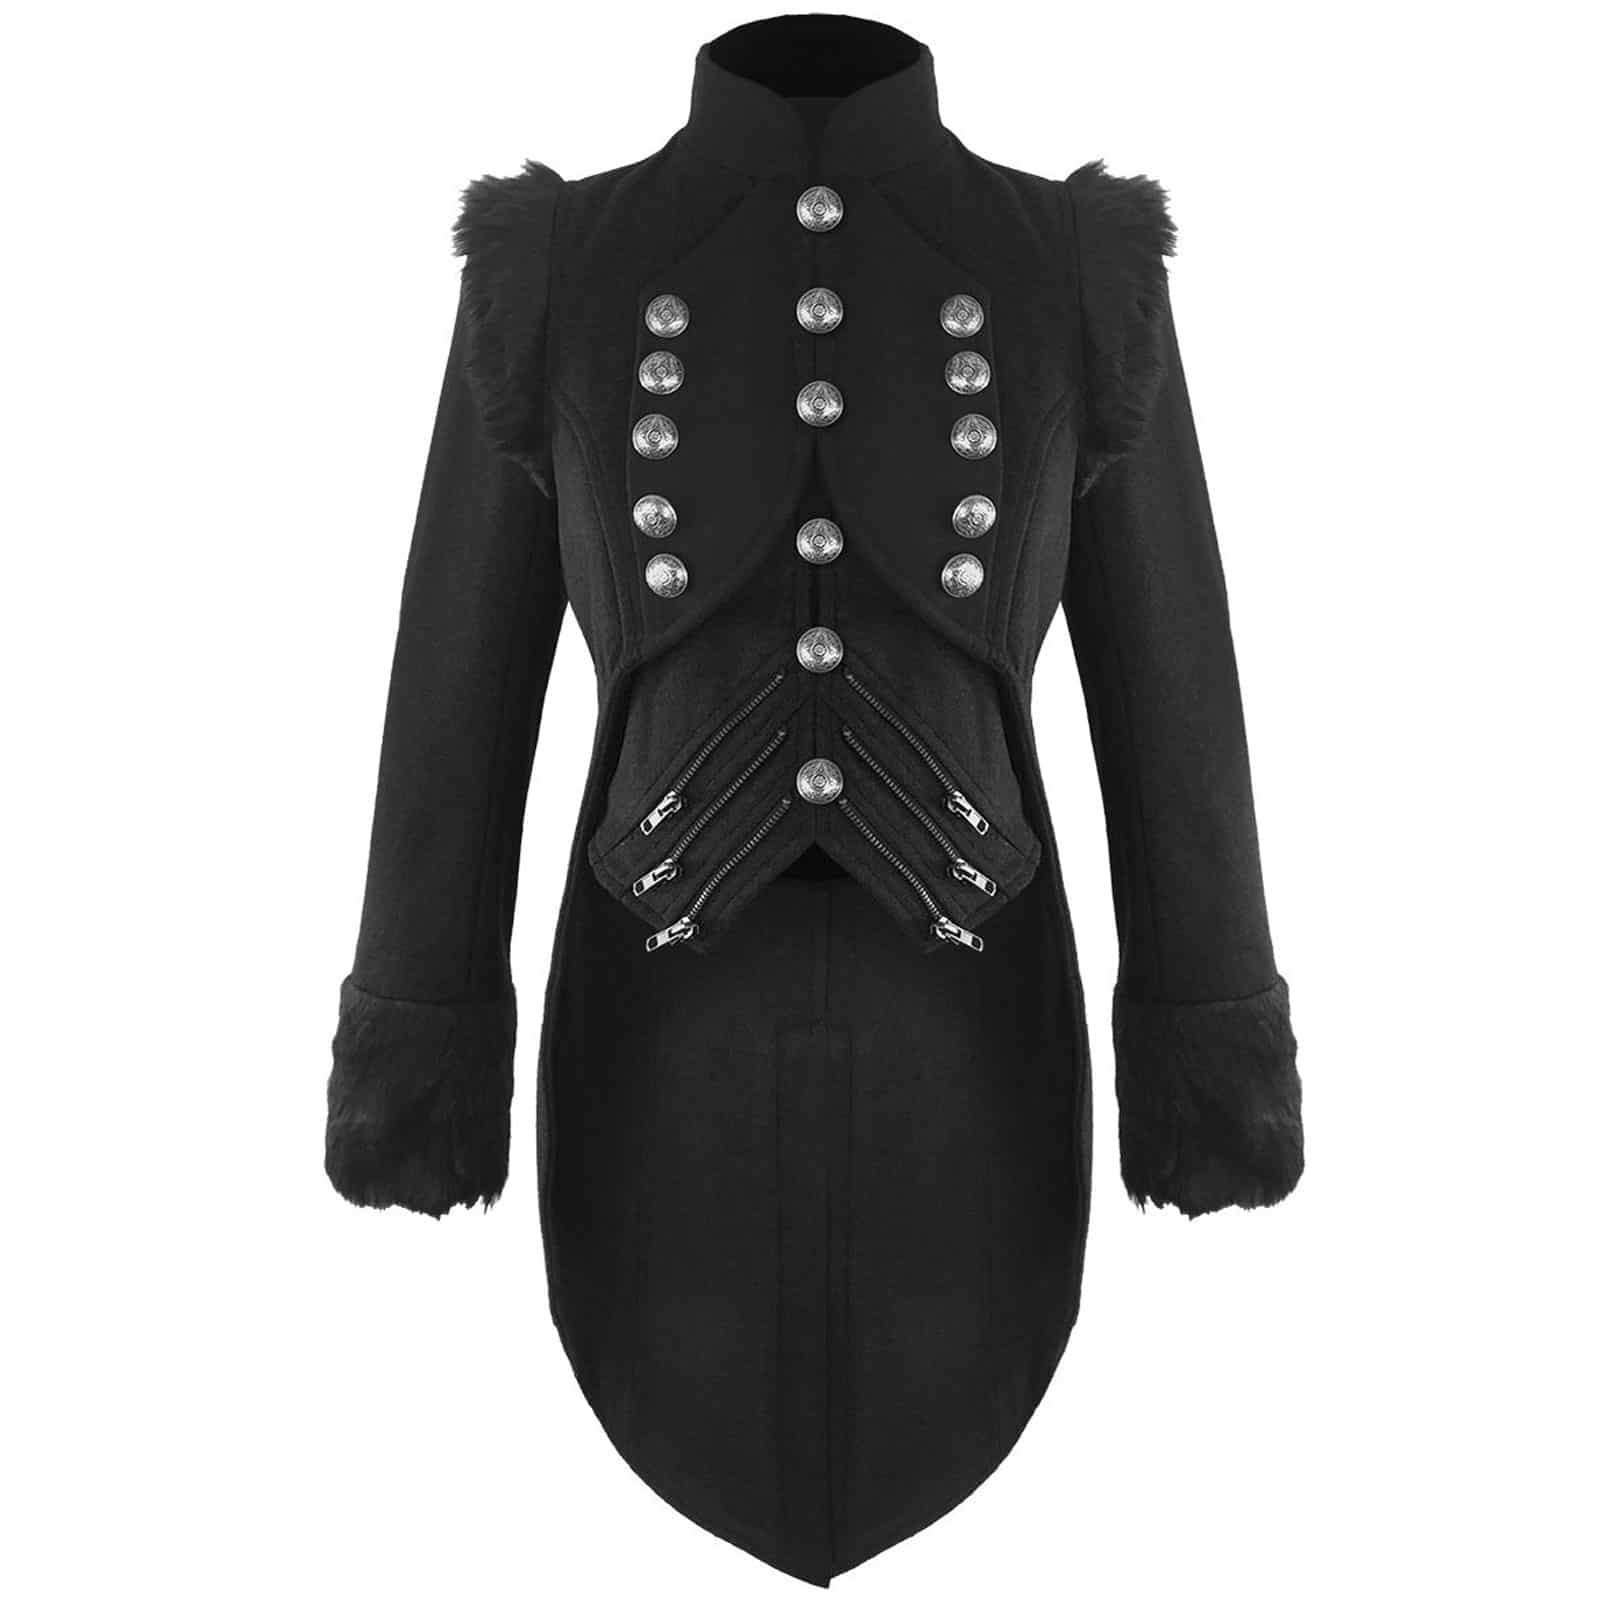 Gothic coats for women